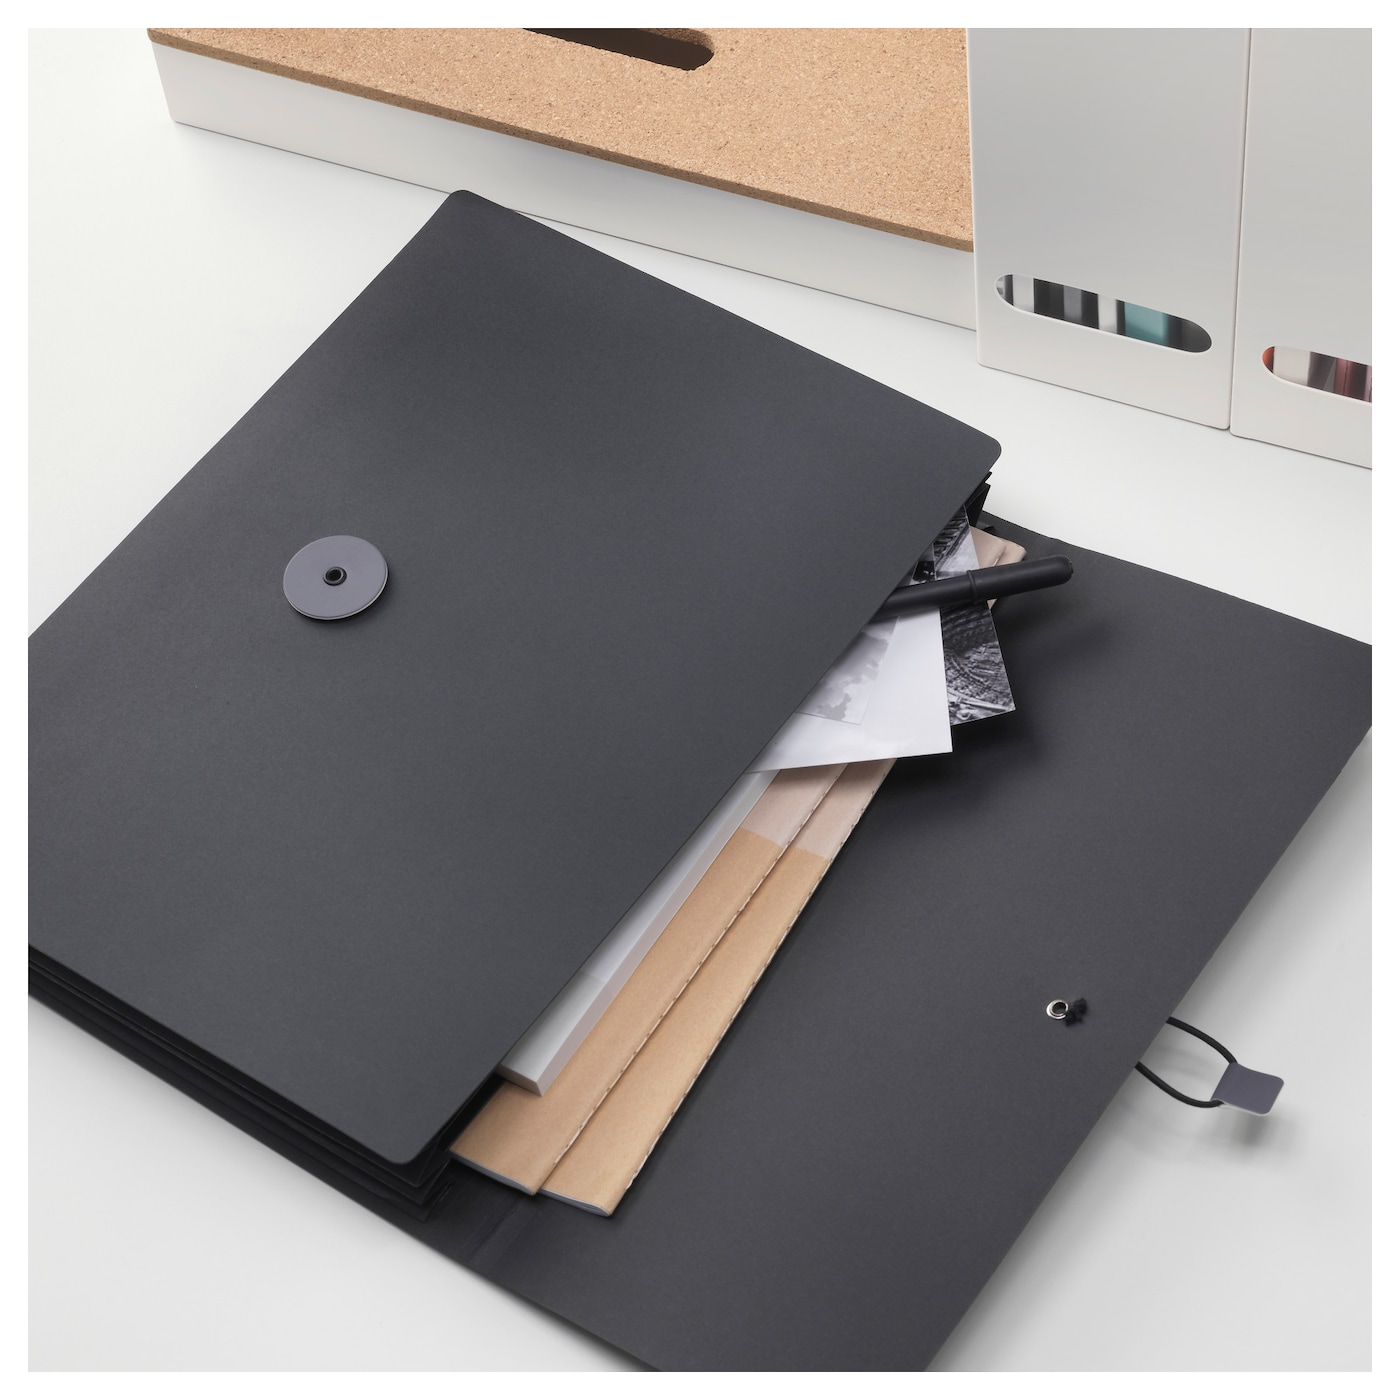 IKEA FULLFÖLJA folder Has 3 pockets that keep your papers organised and make them easier to find.